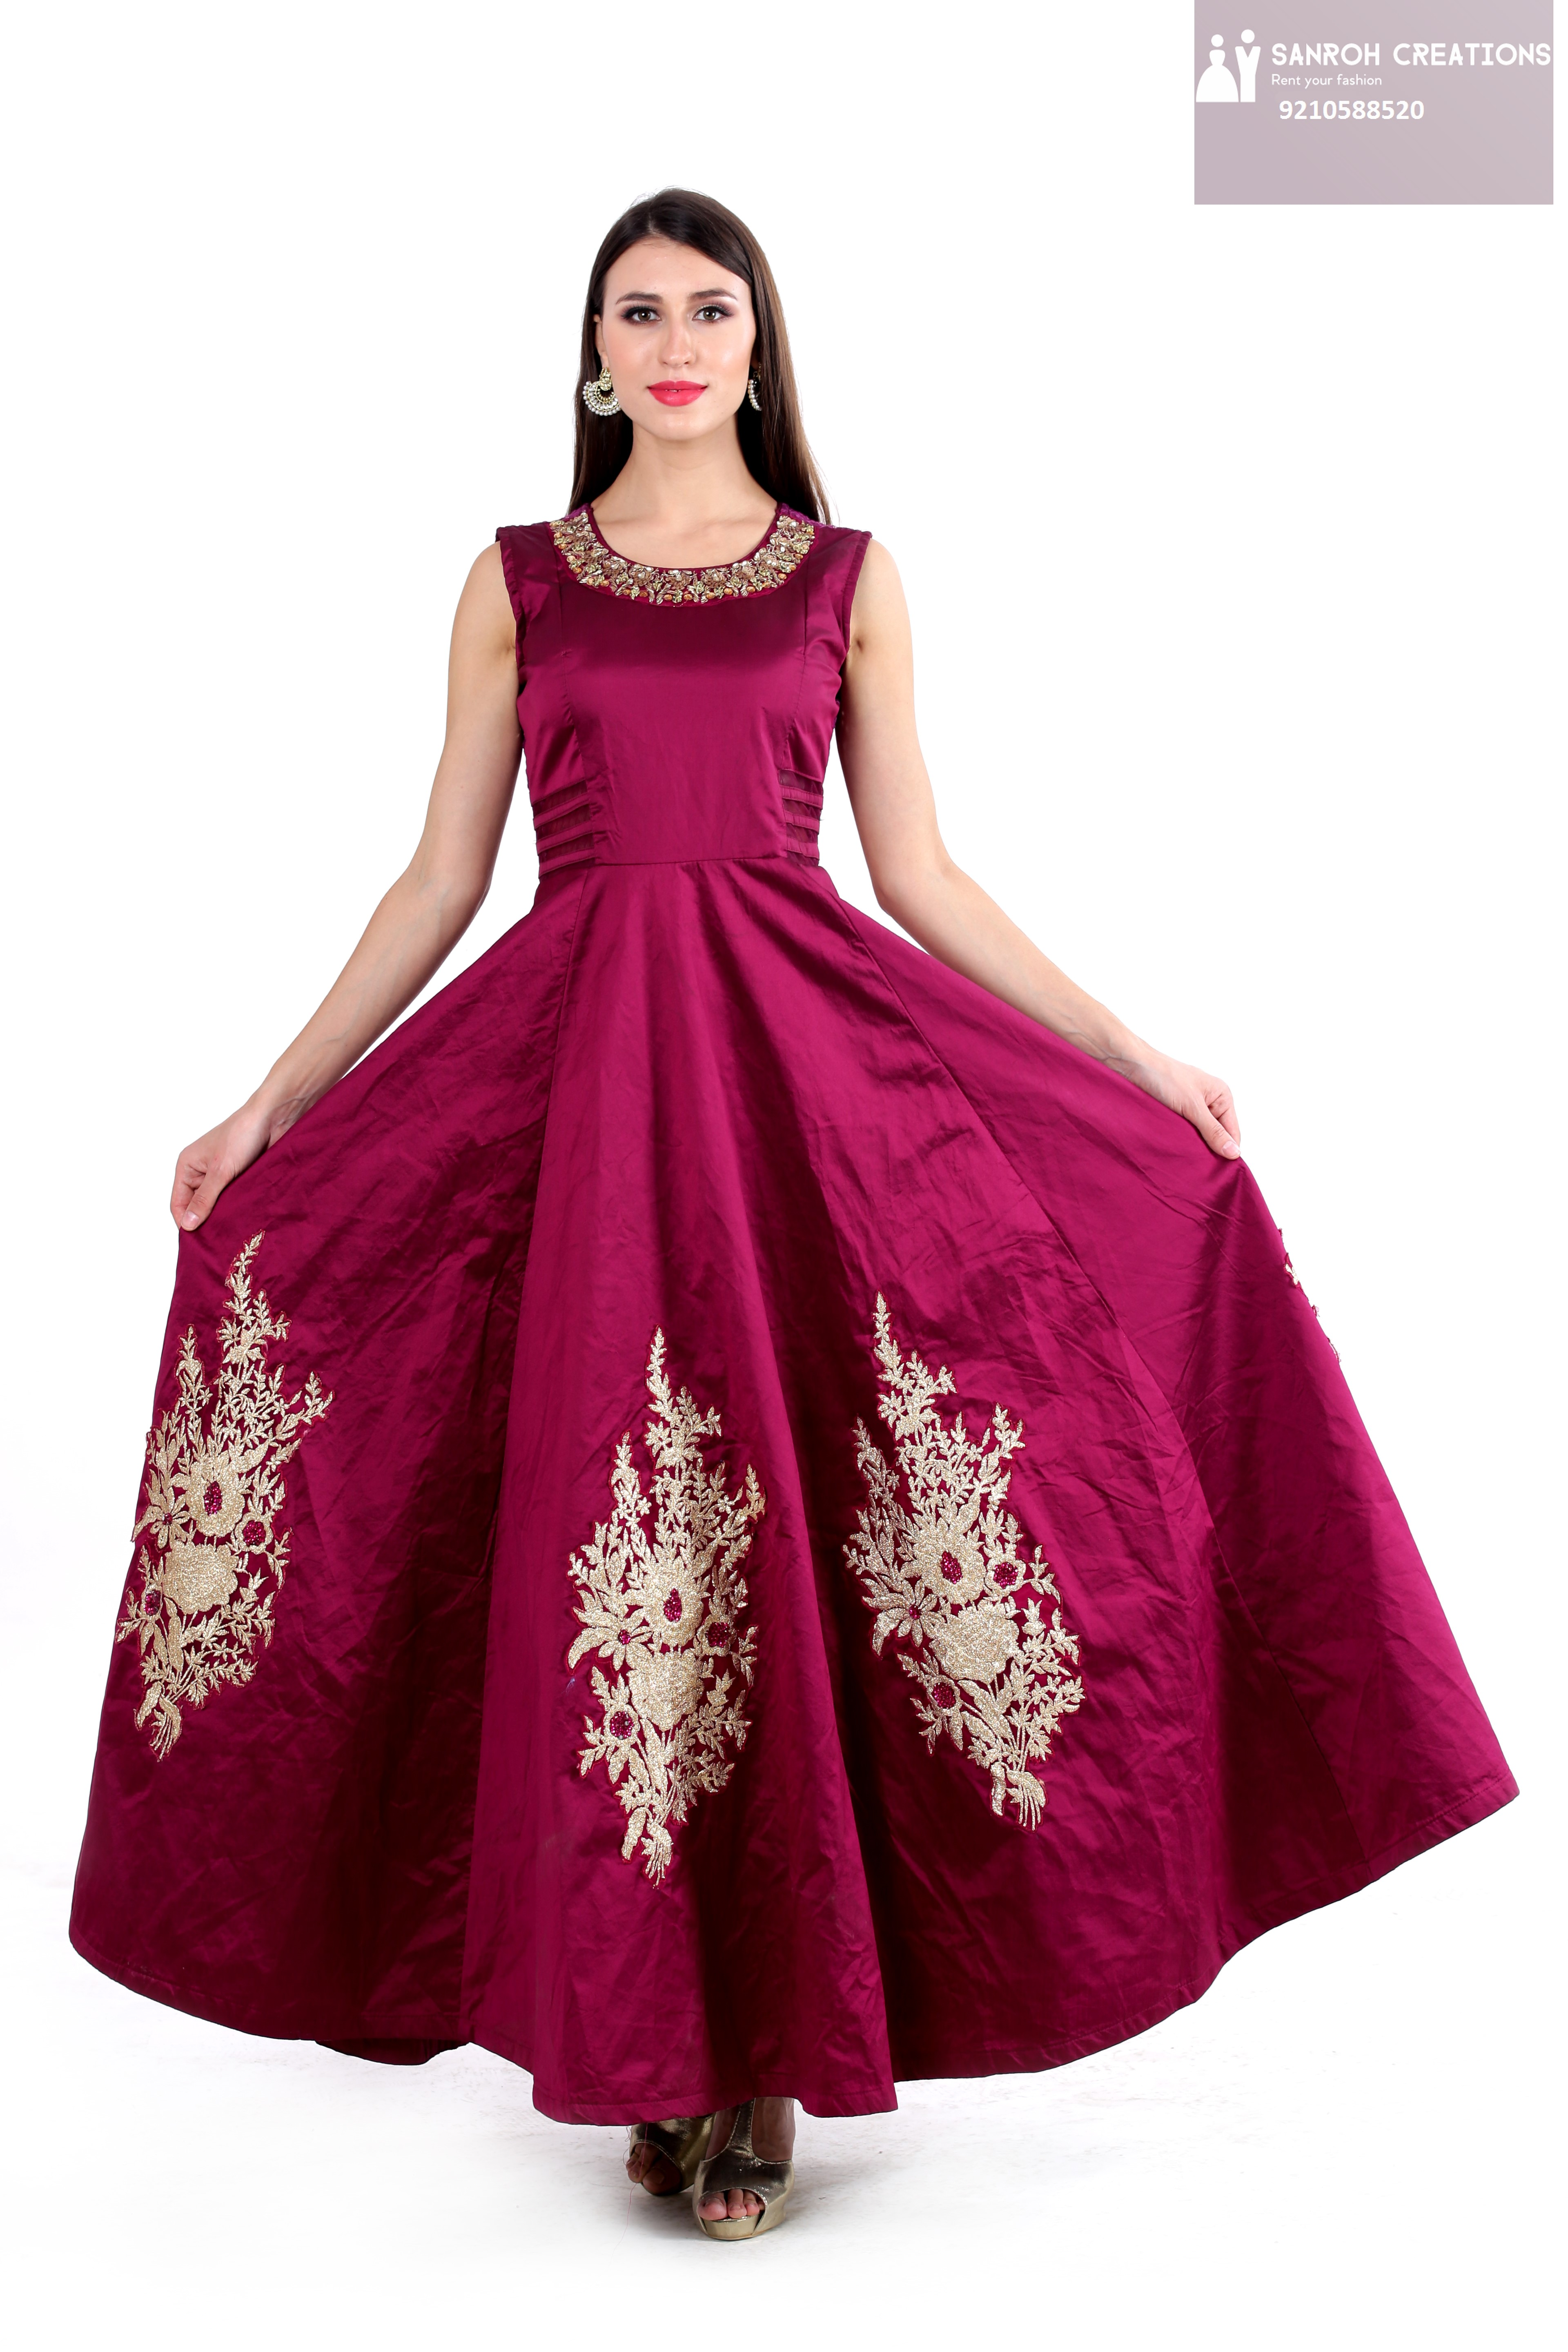 party wear dresses for girl on rent in Gurgaon sector 14